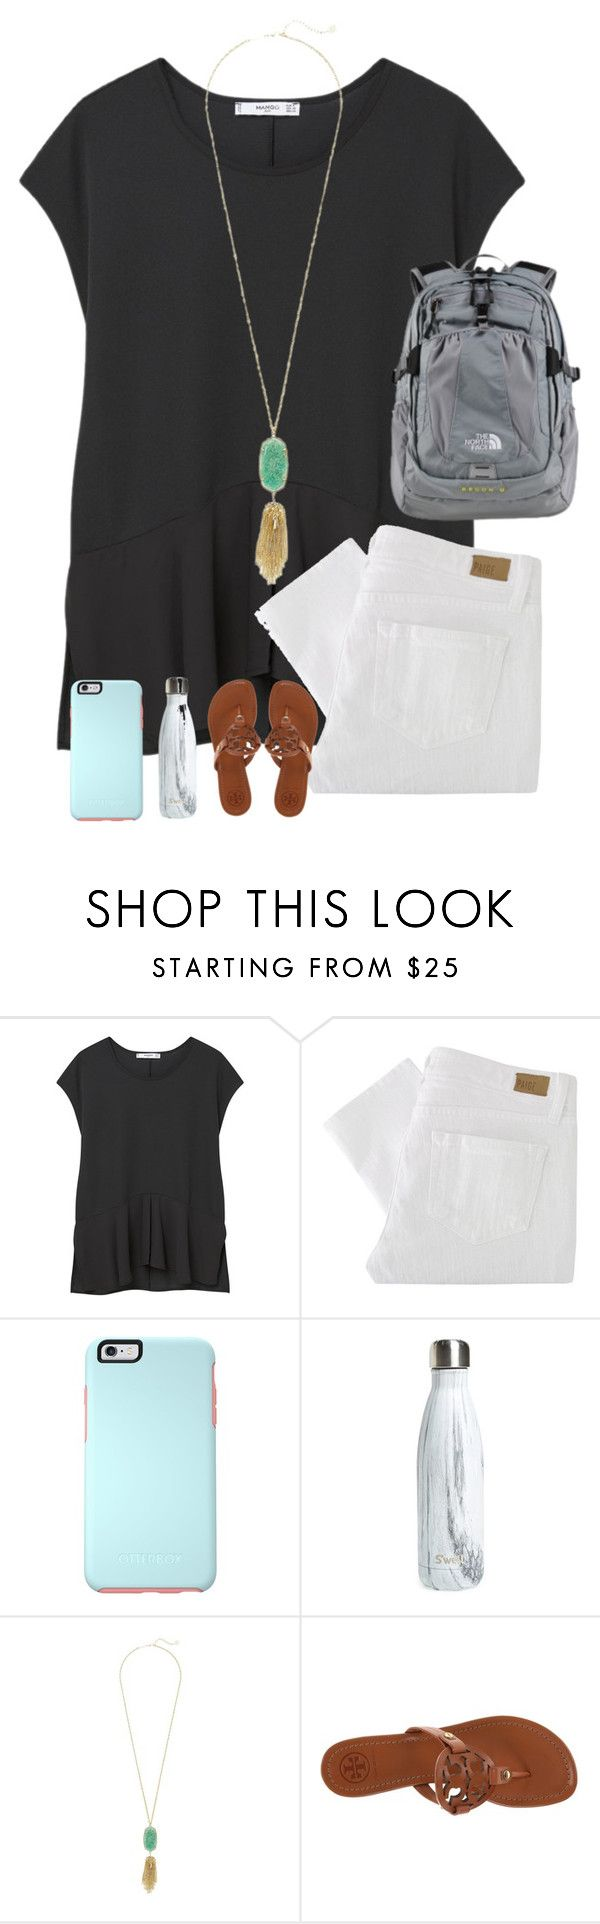 """""""1st day of school!!"""" by melaniebethc ❤ liked on Polyvore featuring MANGO, Paige Denim, OtterBox, S'well, Kendra Scott, Tory Burch and The North Face"""